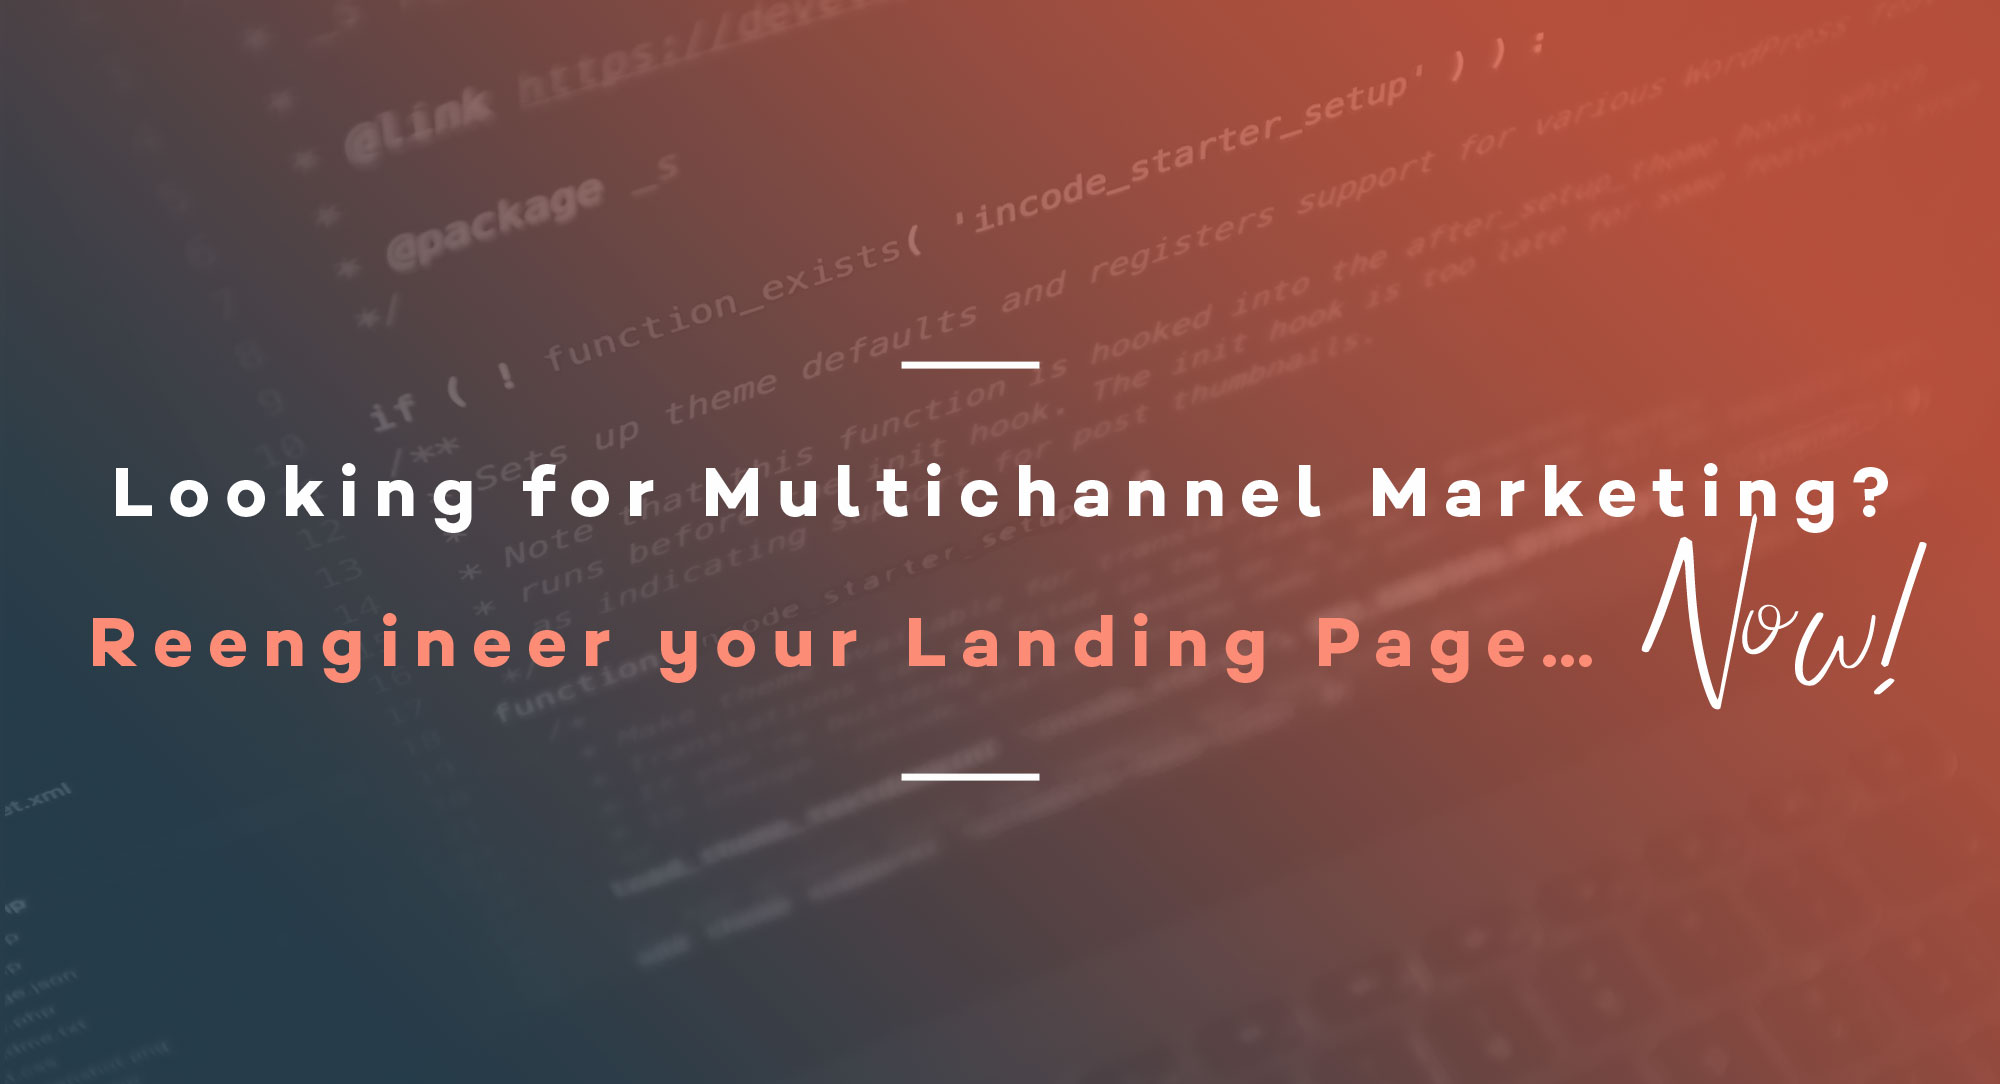 Looking for Multichannel Marketing Reengineer your Landing Page… Now!